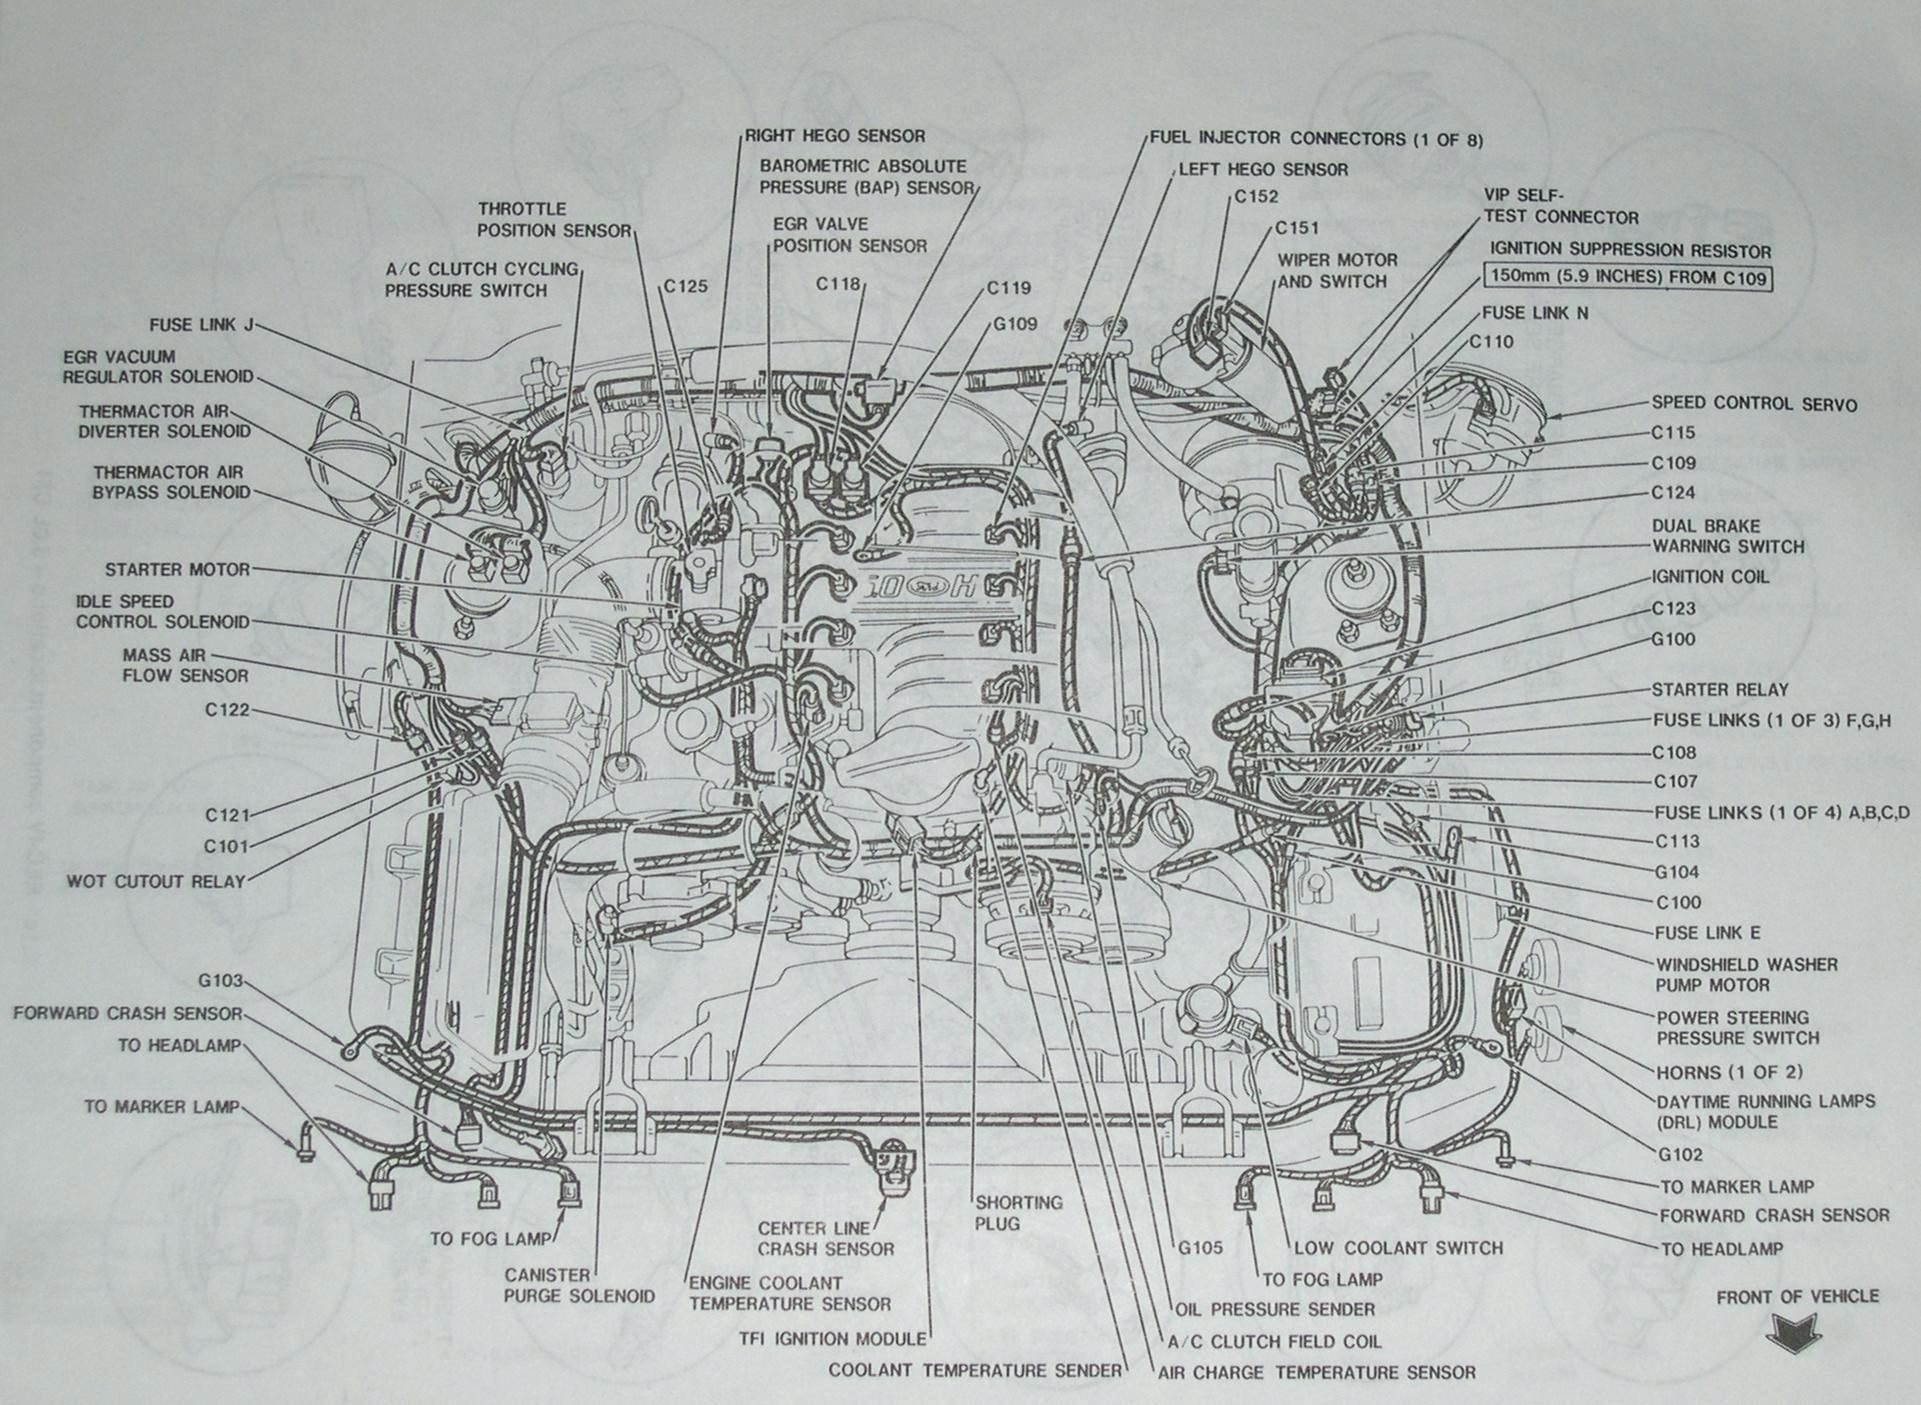 hight resolution of 2001 ford mustang gt engine diagram wiring diagram inside 2001 ford mustang v6 engine diagram